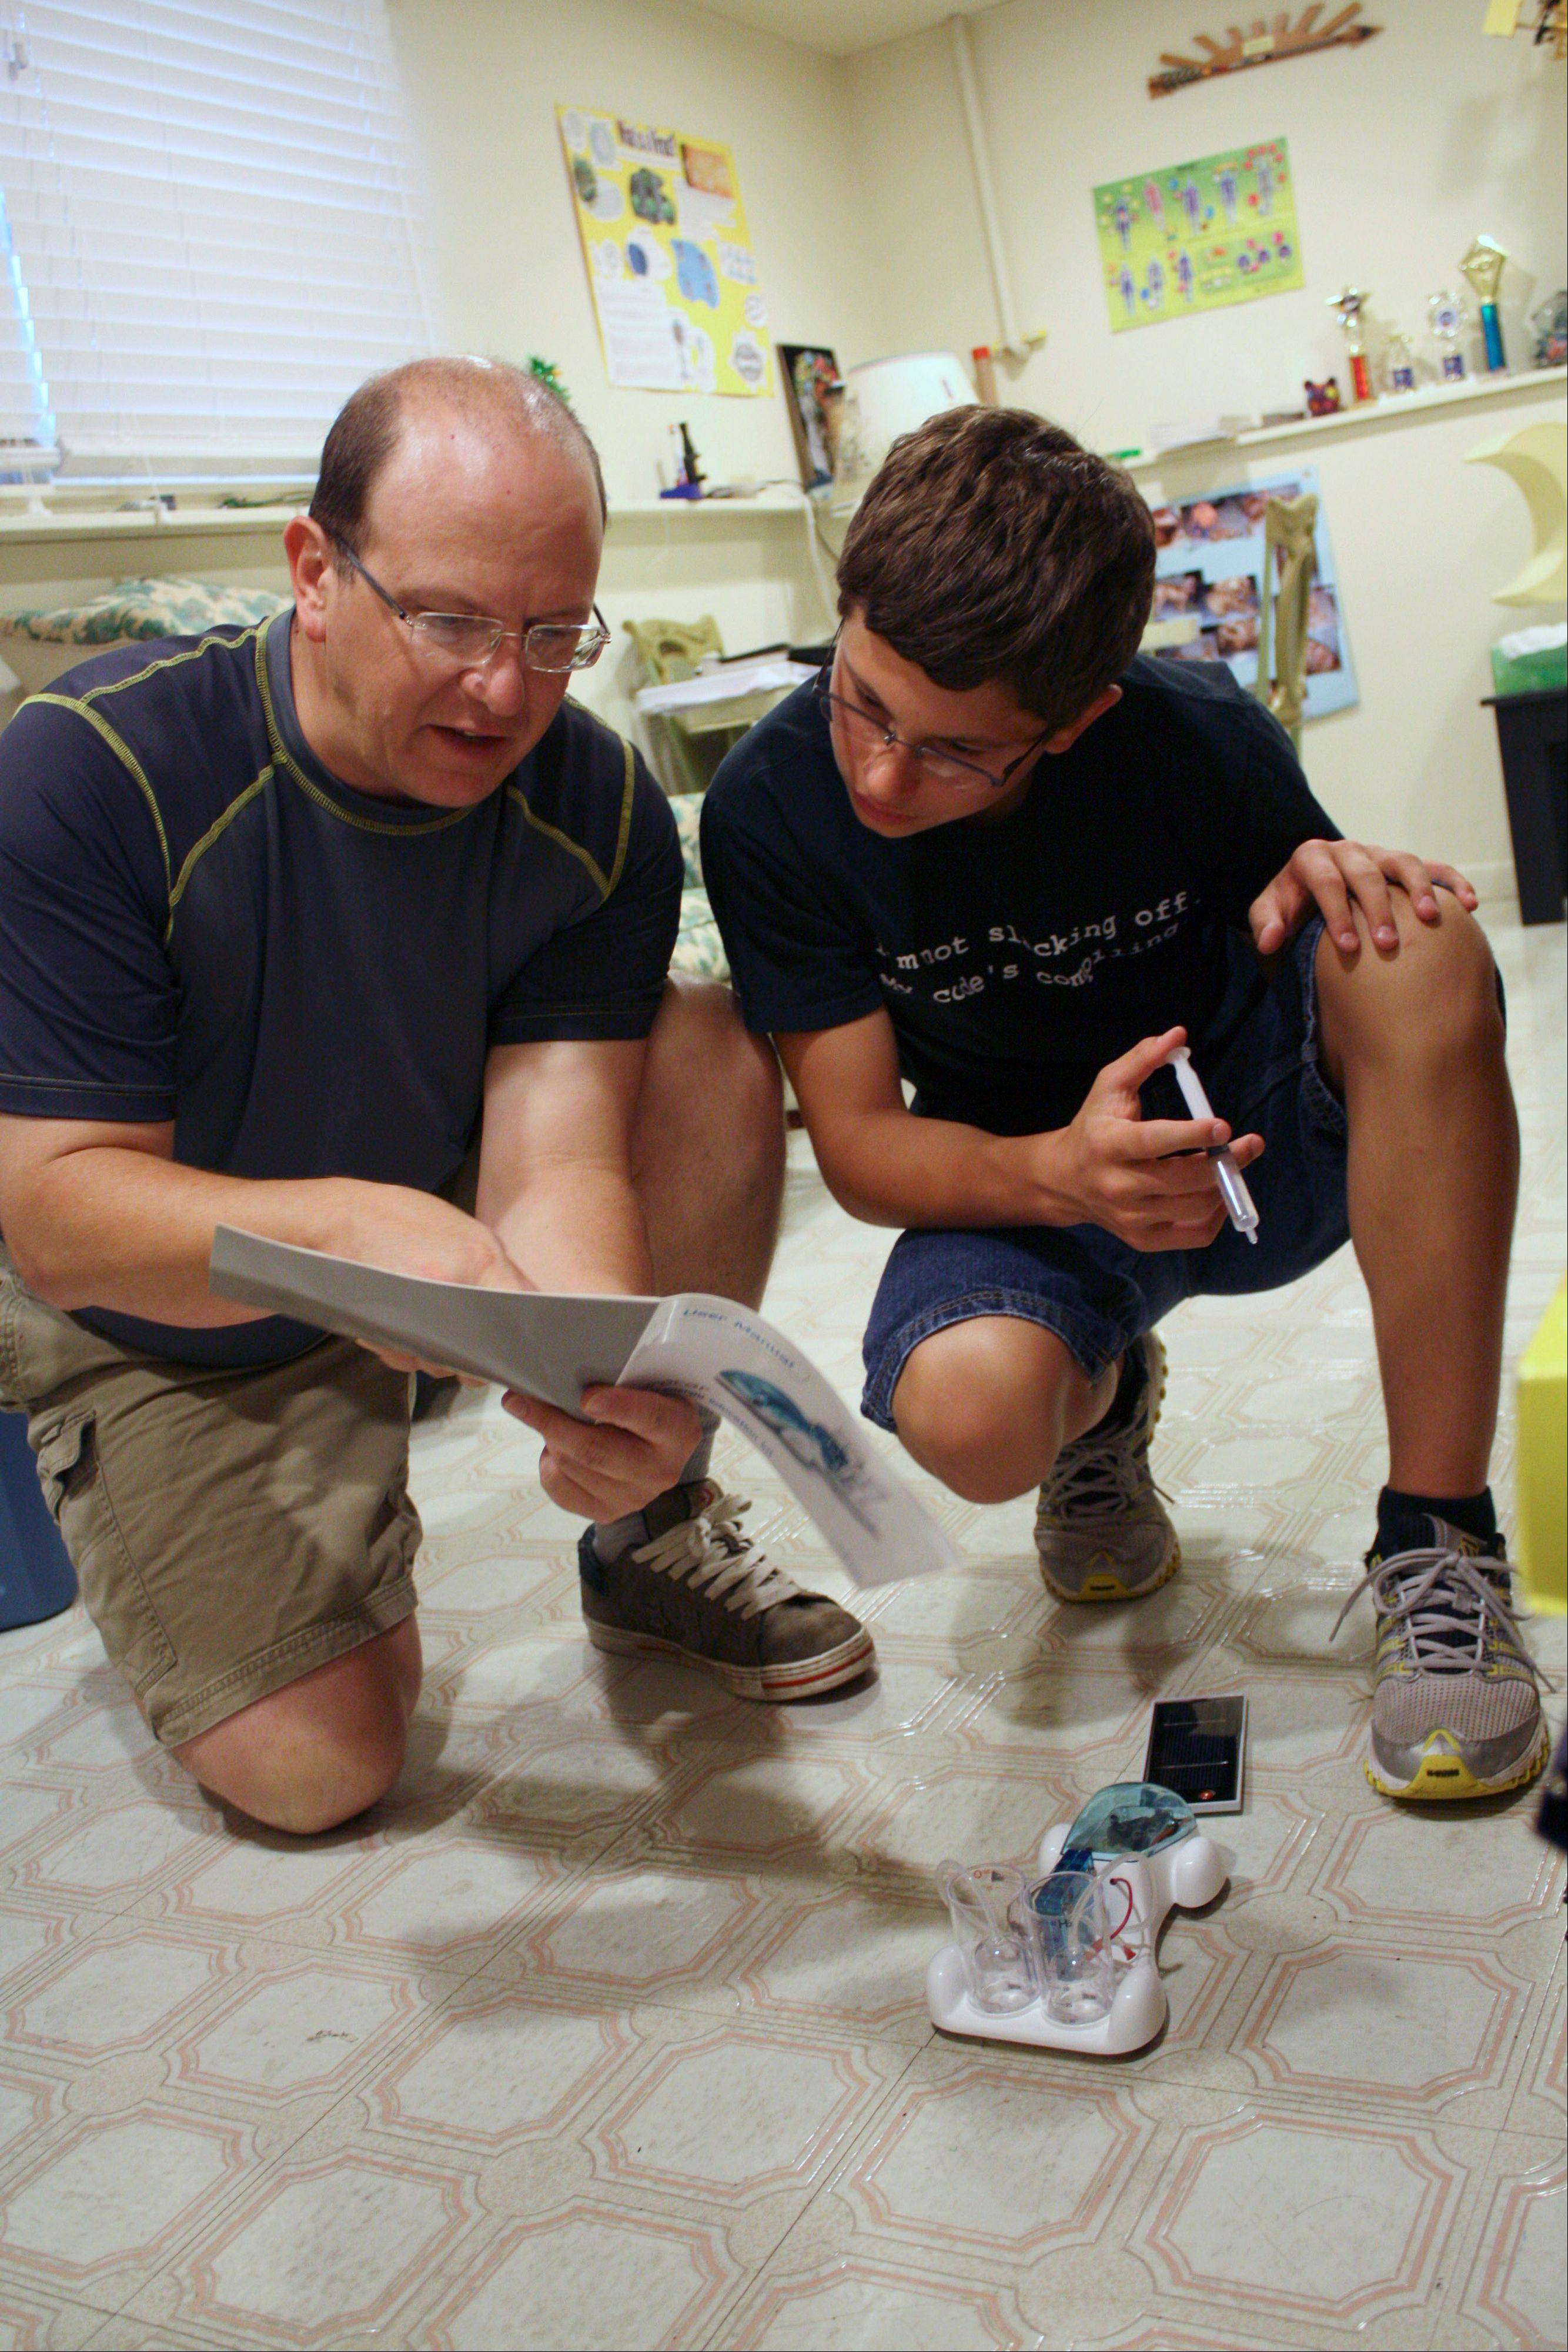 Noah Egler, 13, and his father, Mark, work together on a science experiment in the basement of their home in Bourbonnais. Because of his love for science and electronics, Noah was invited to participate in a workshop on electronic prosthetics at the Indiana University Northwest medical school.